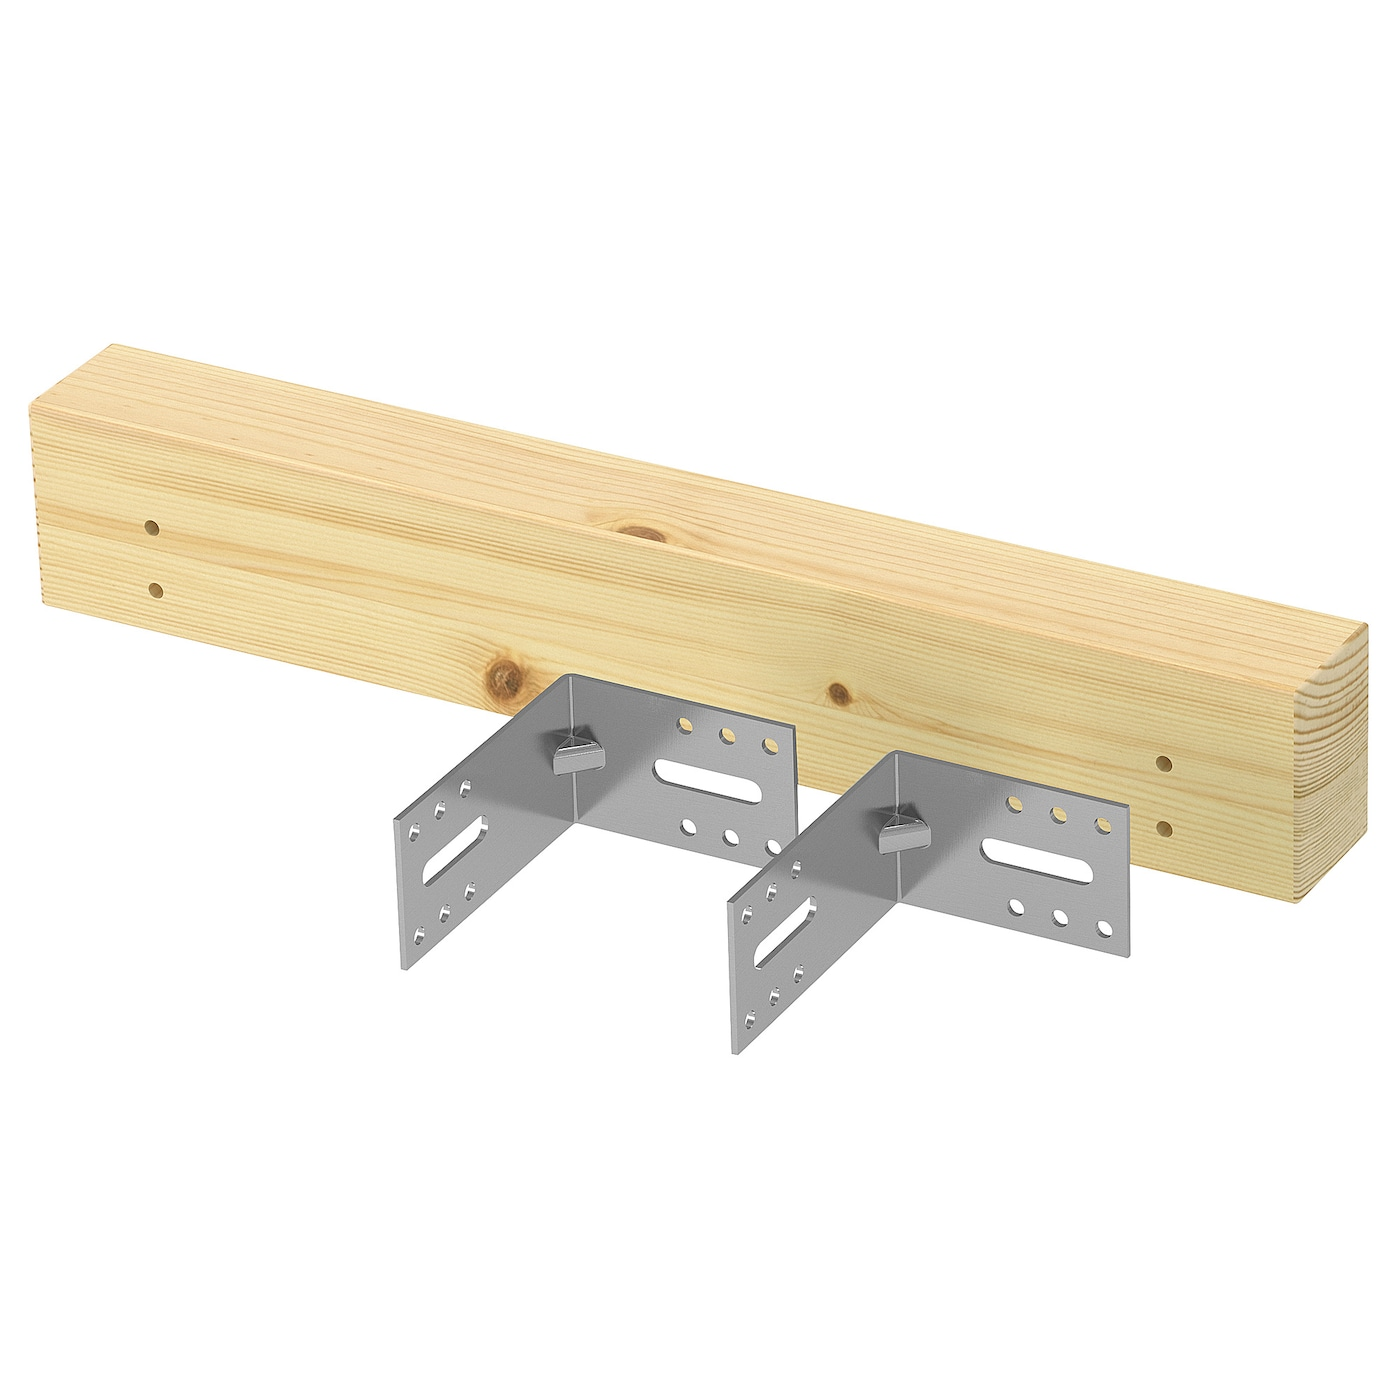 IKEA METOD support bracket for kitchen island